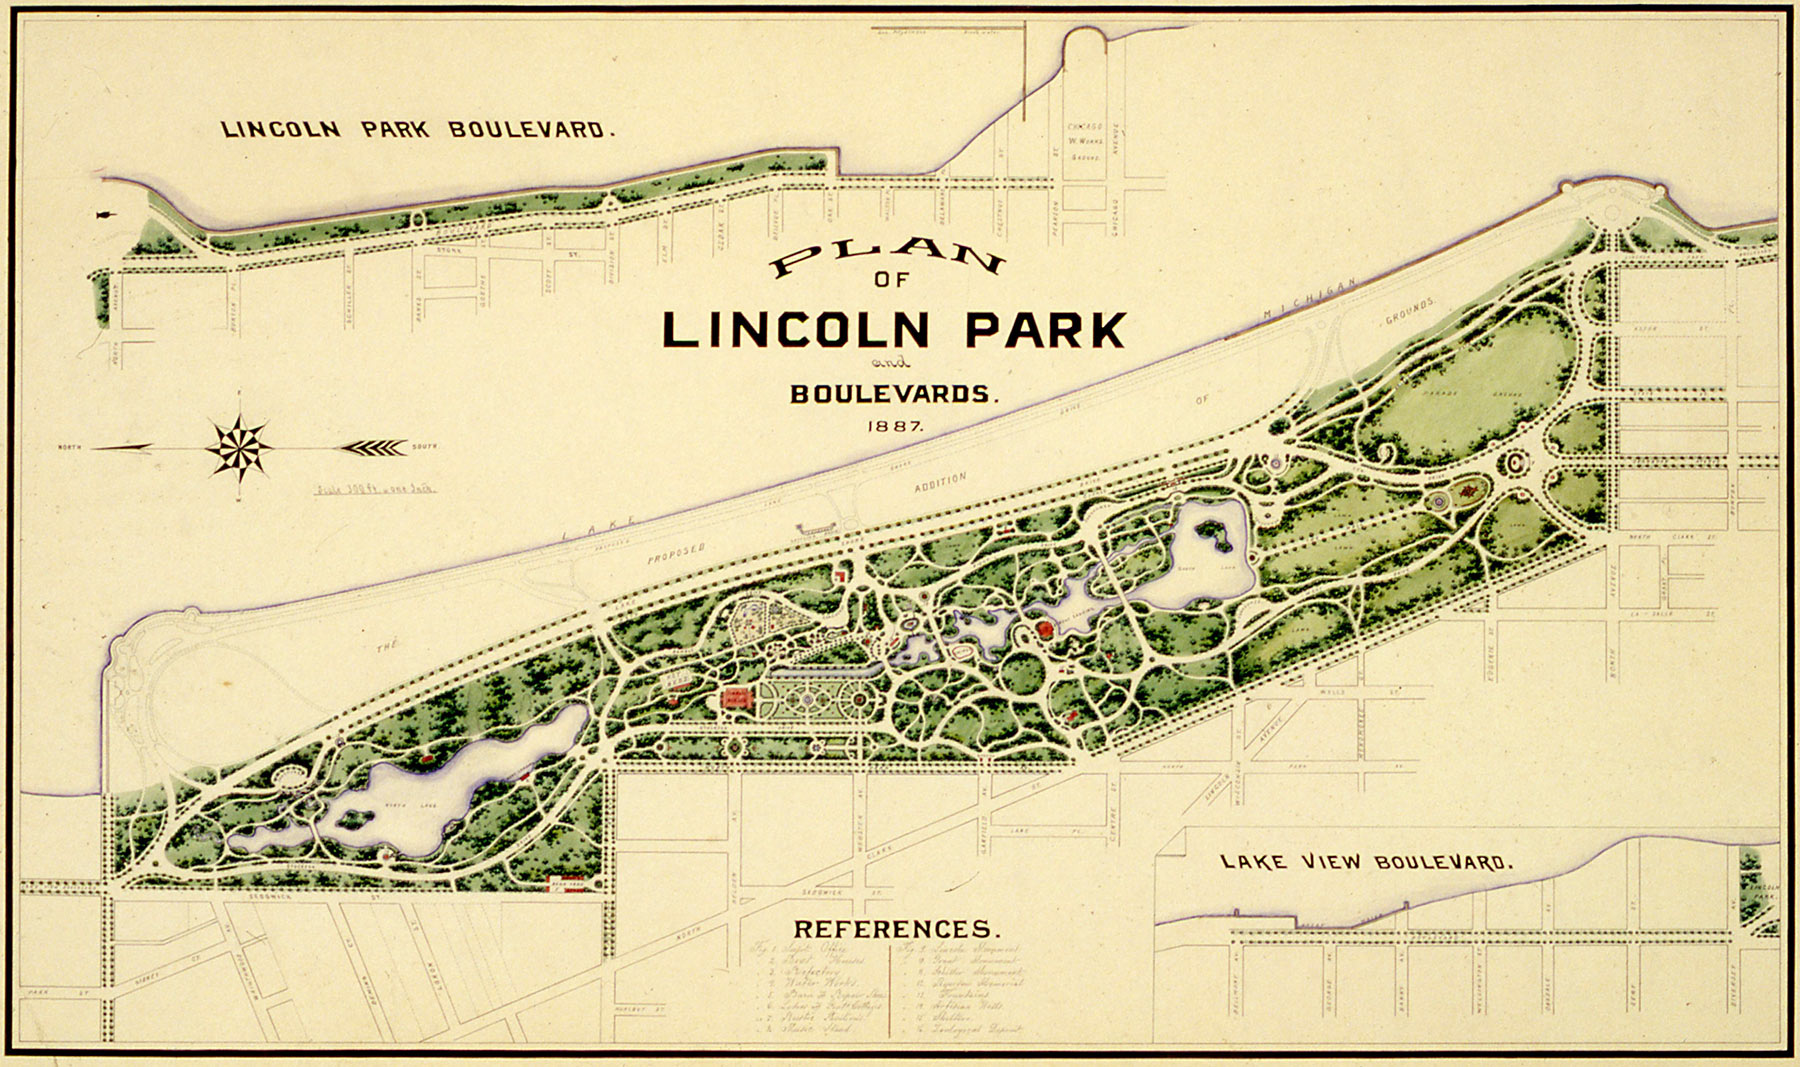 Plan of Lincoln Park and Boulevards, 1887. Chicago Park District Records: Drawings, Special Collections, Chicago Public Library.